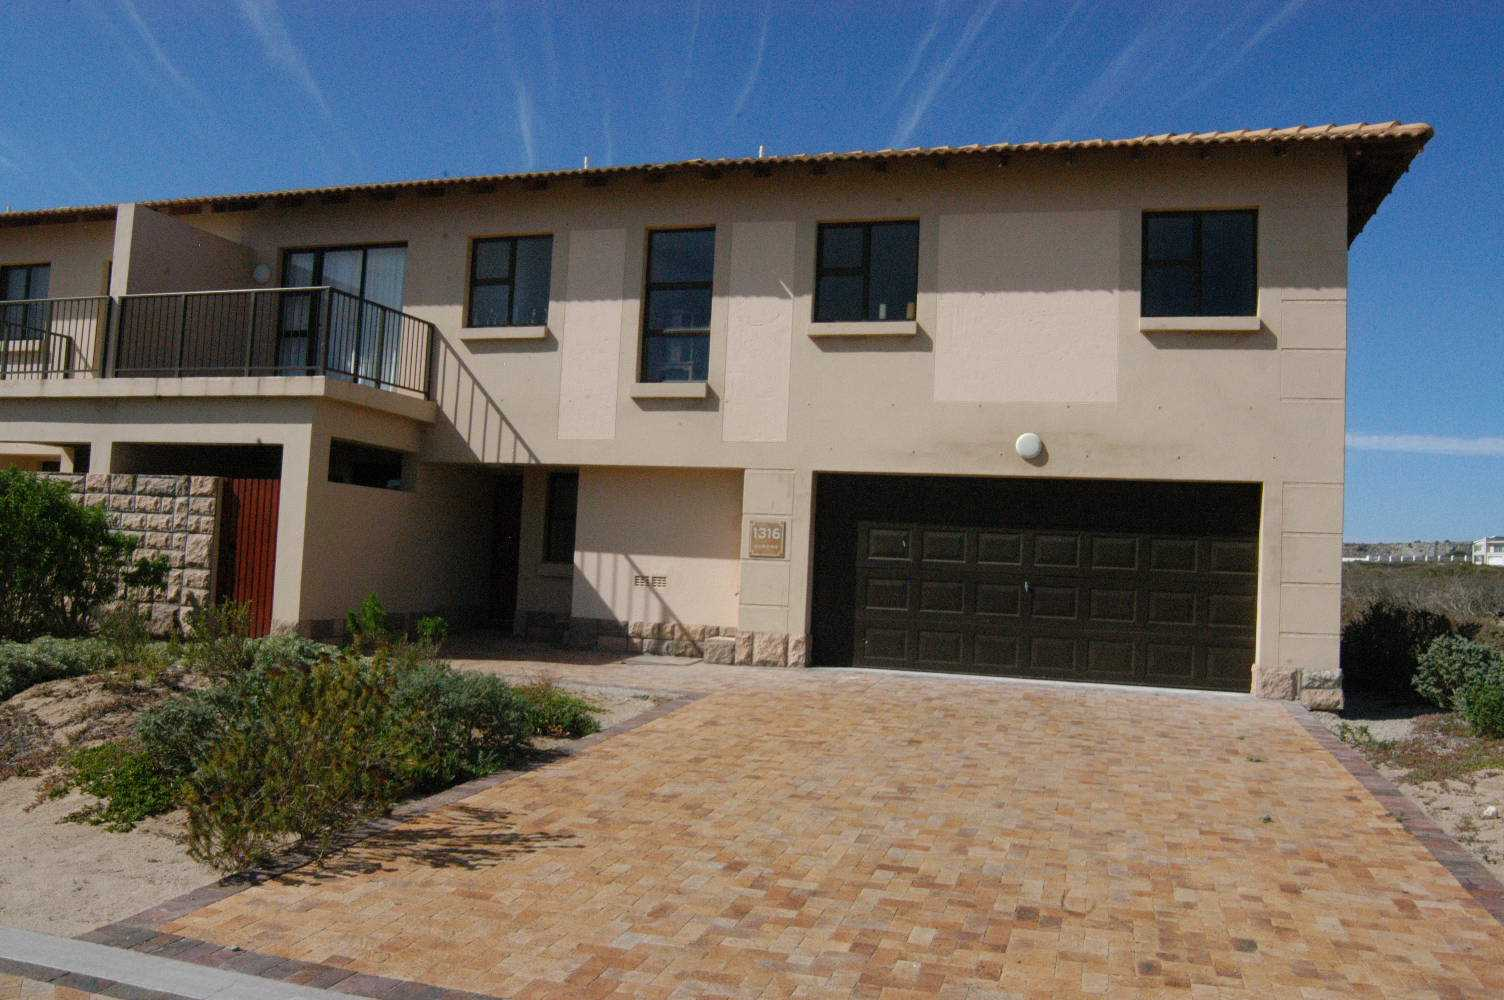 Townhouse with 4 bedrooms and a double garage with direct access